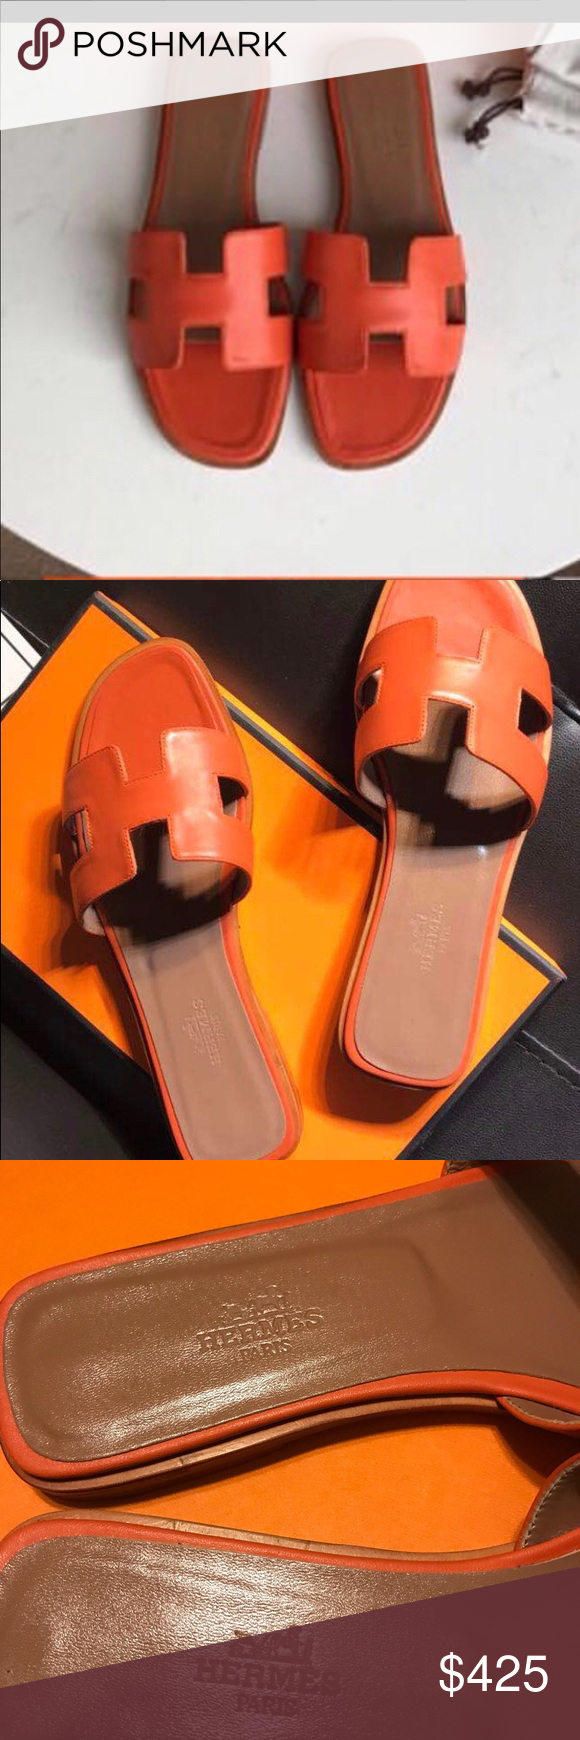 c0d4d3b5b4ad Hermes Oran Sandals size 39 Hermes Oran orange color Sandals size 39 used  once with box please see all photos before make an offer Hermes Shoes  Sandals